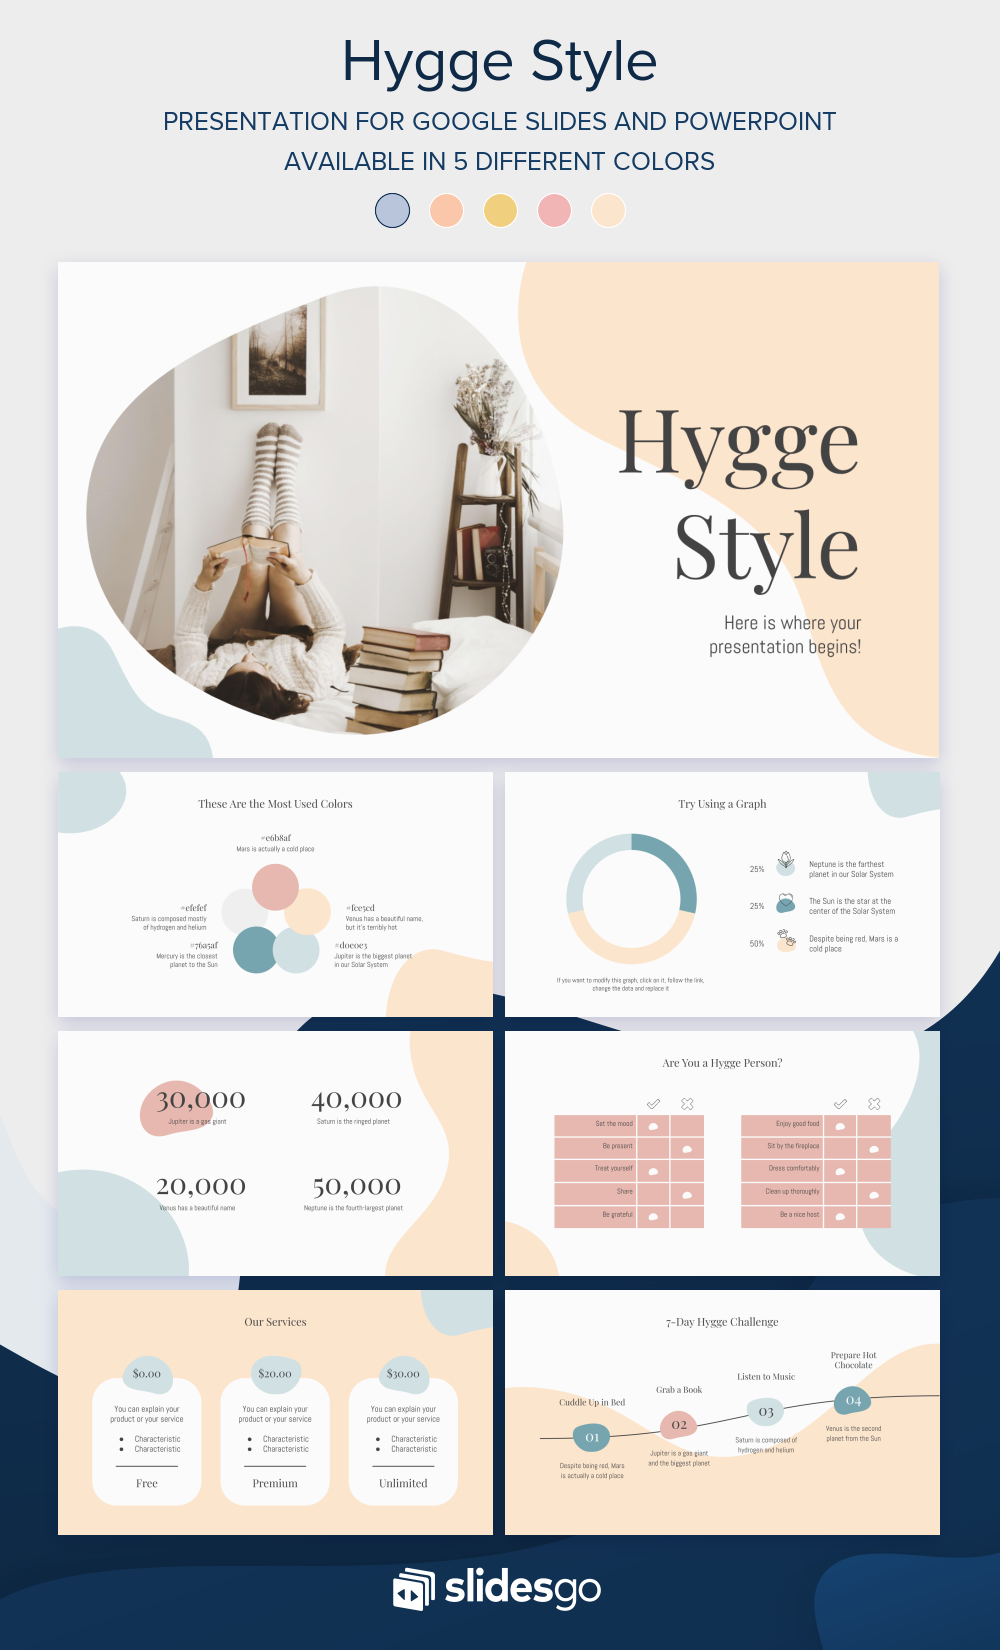 Hygge Style Presentation Powerpoint Presentation Design Free Powerpoint Presentations Powerpoint Design Templates